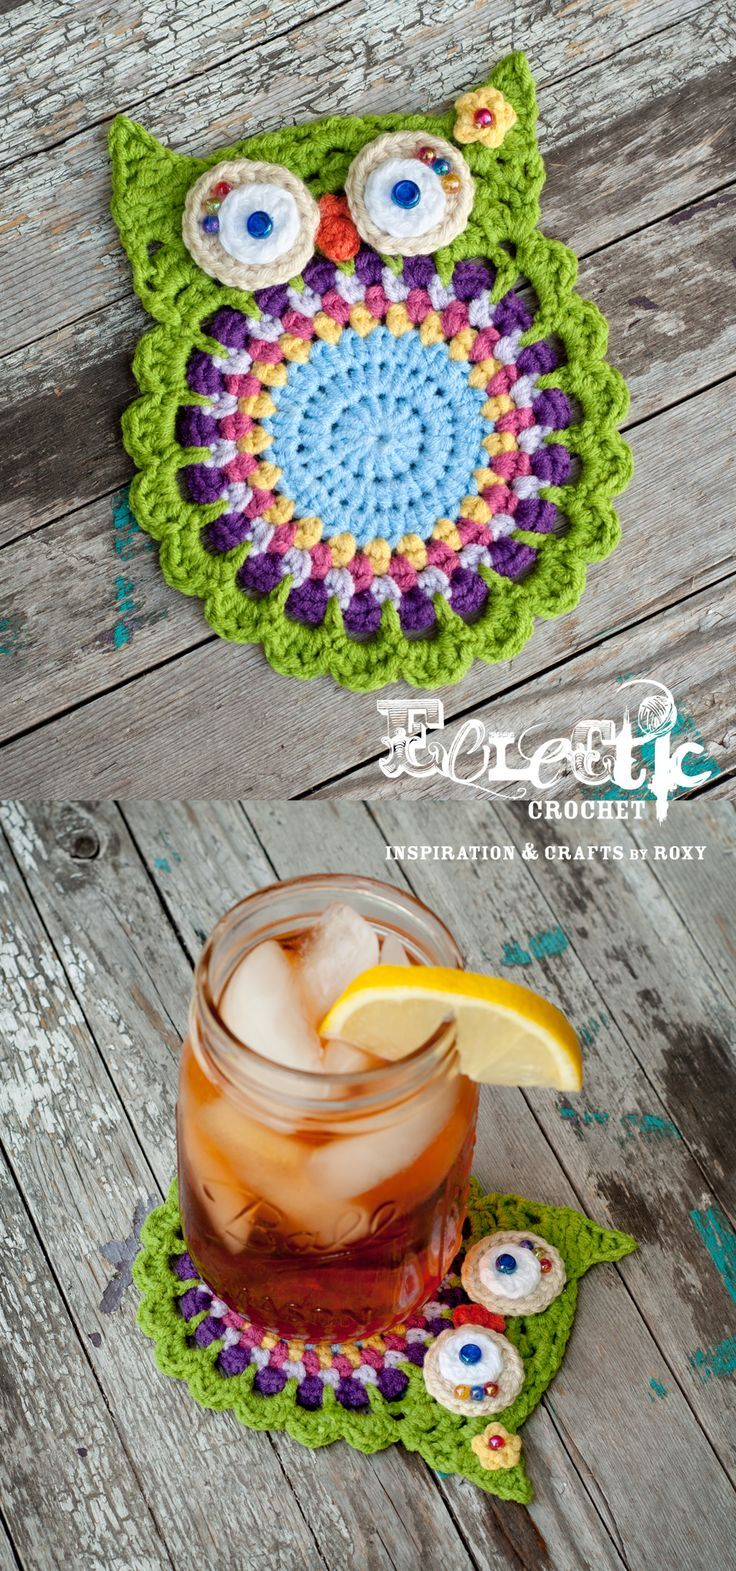 Love these crochet owl coasters!!!! Great pattern that was very easy to follow and has good demo pics